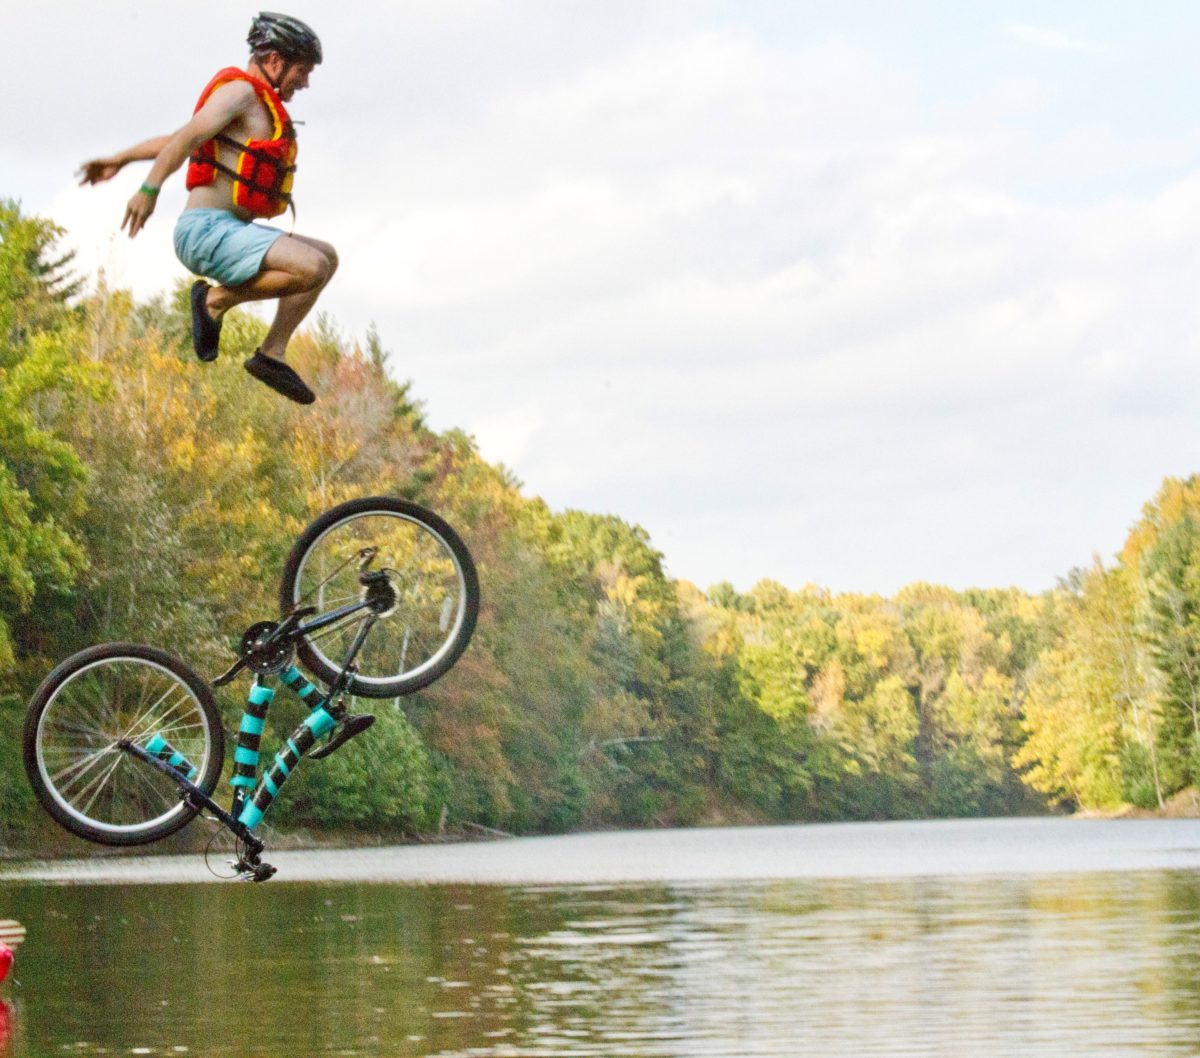 If you make it across the floating trail but had hoped for a little cooling off in the lake, grab a loaner bike and launch off the dock jump. Photo by: Andrea Wilson